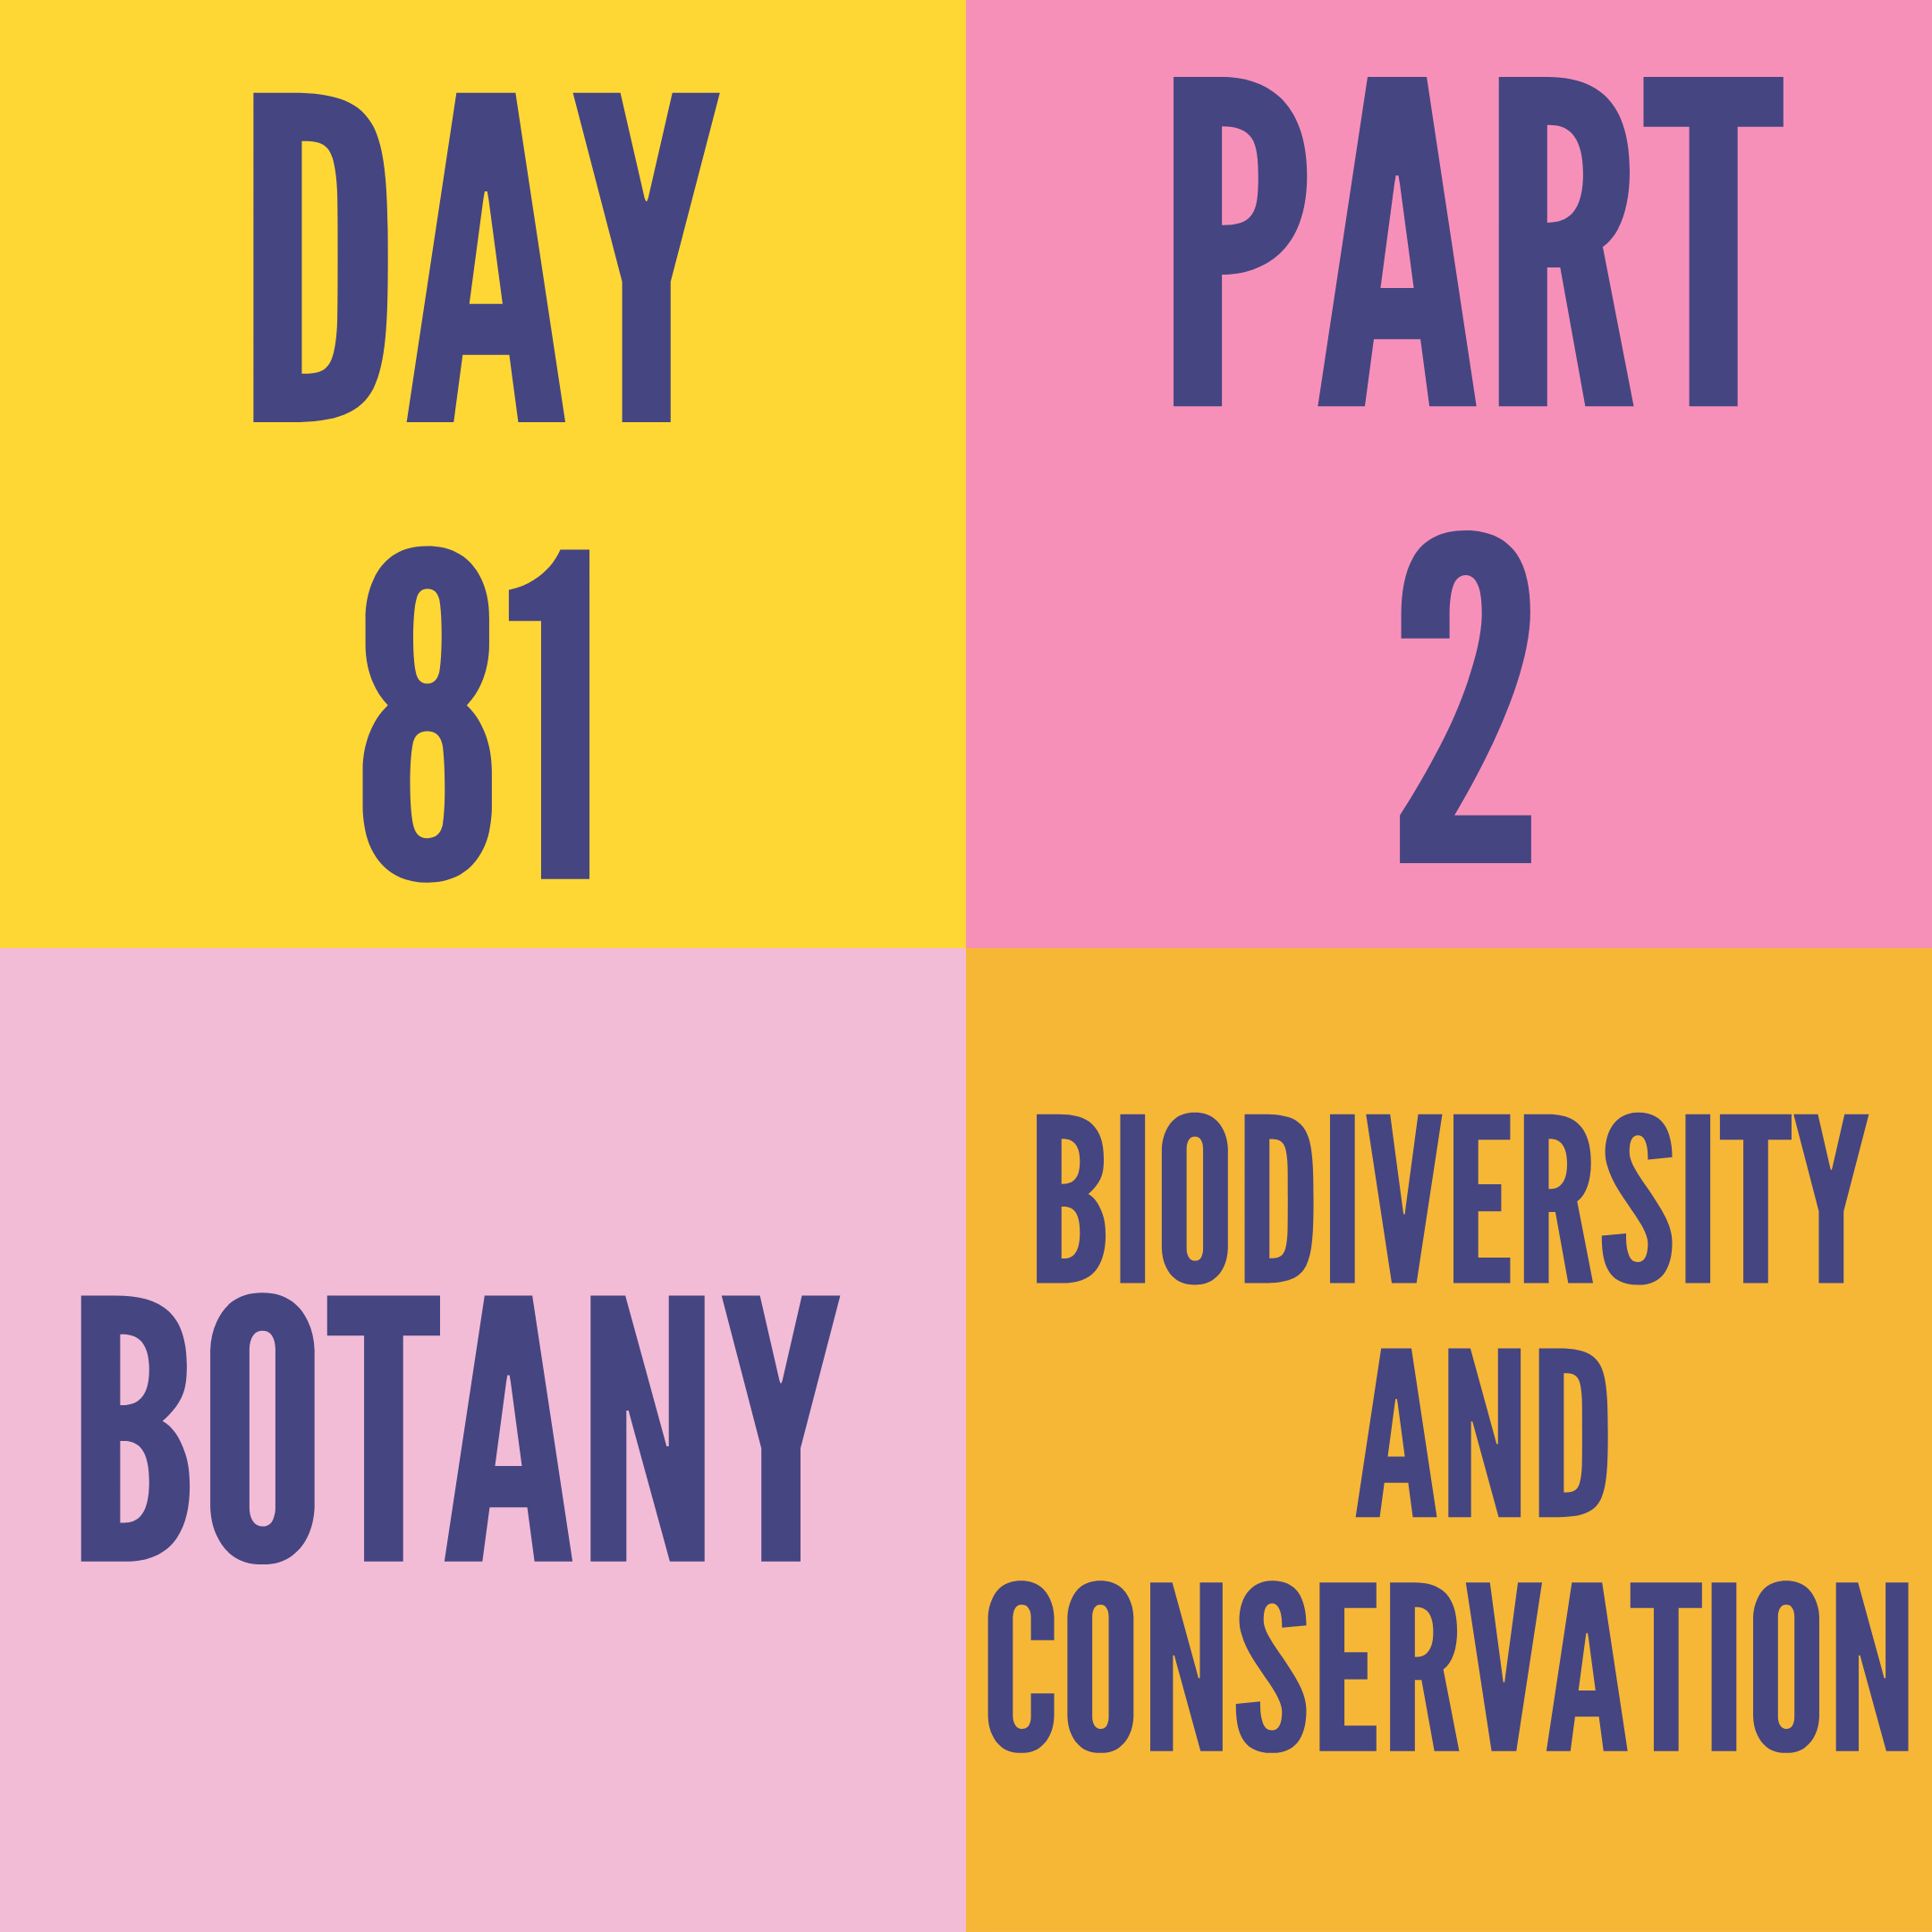 DAY-81 PART-2 BIODIVERSITY AND CONSERVATION